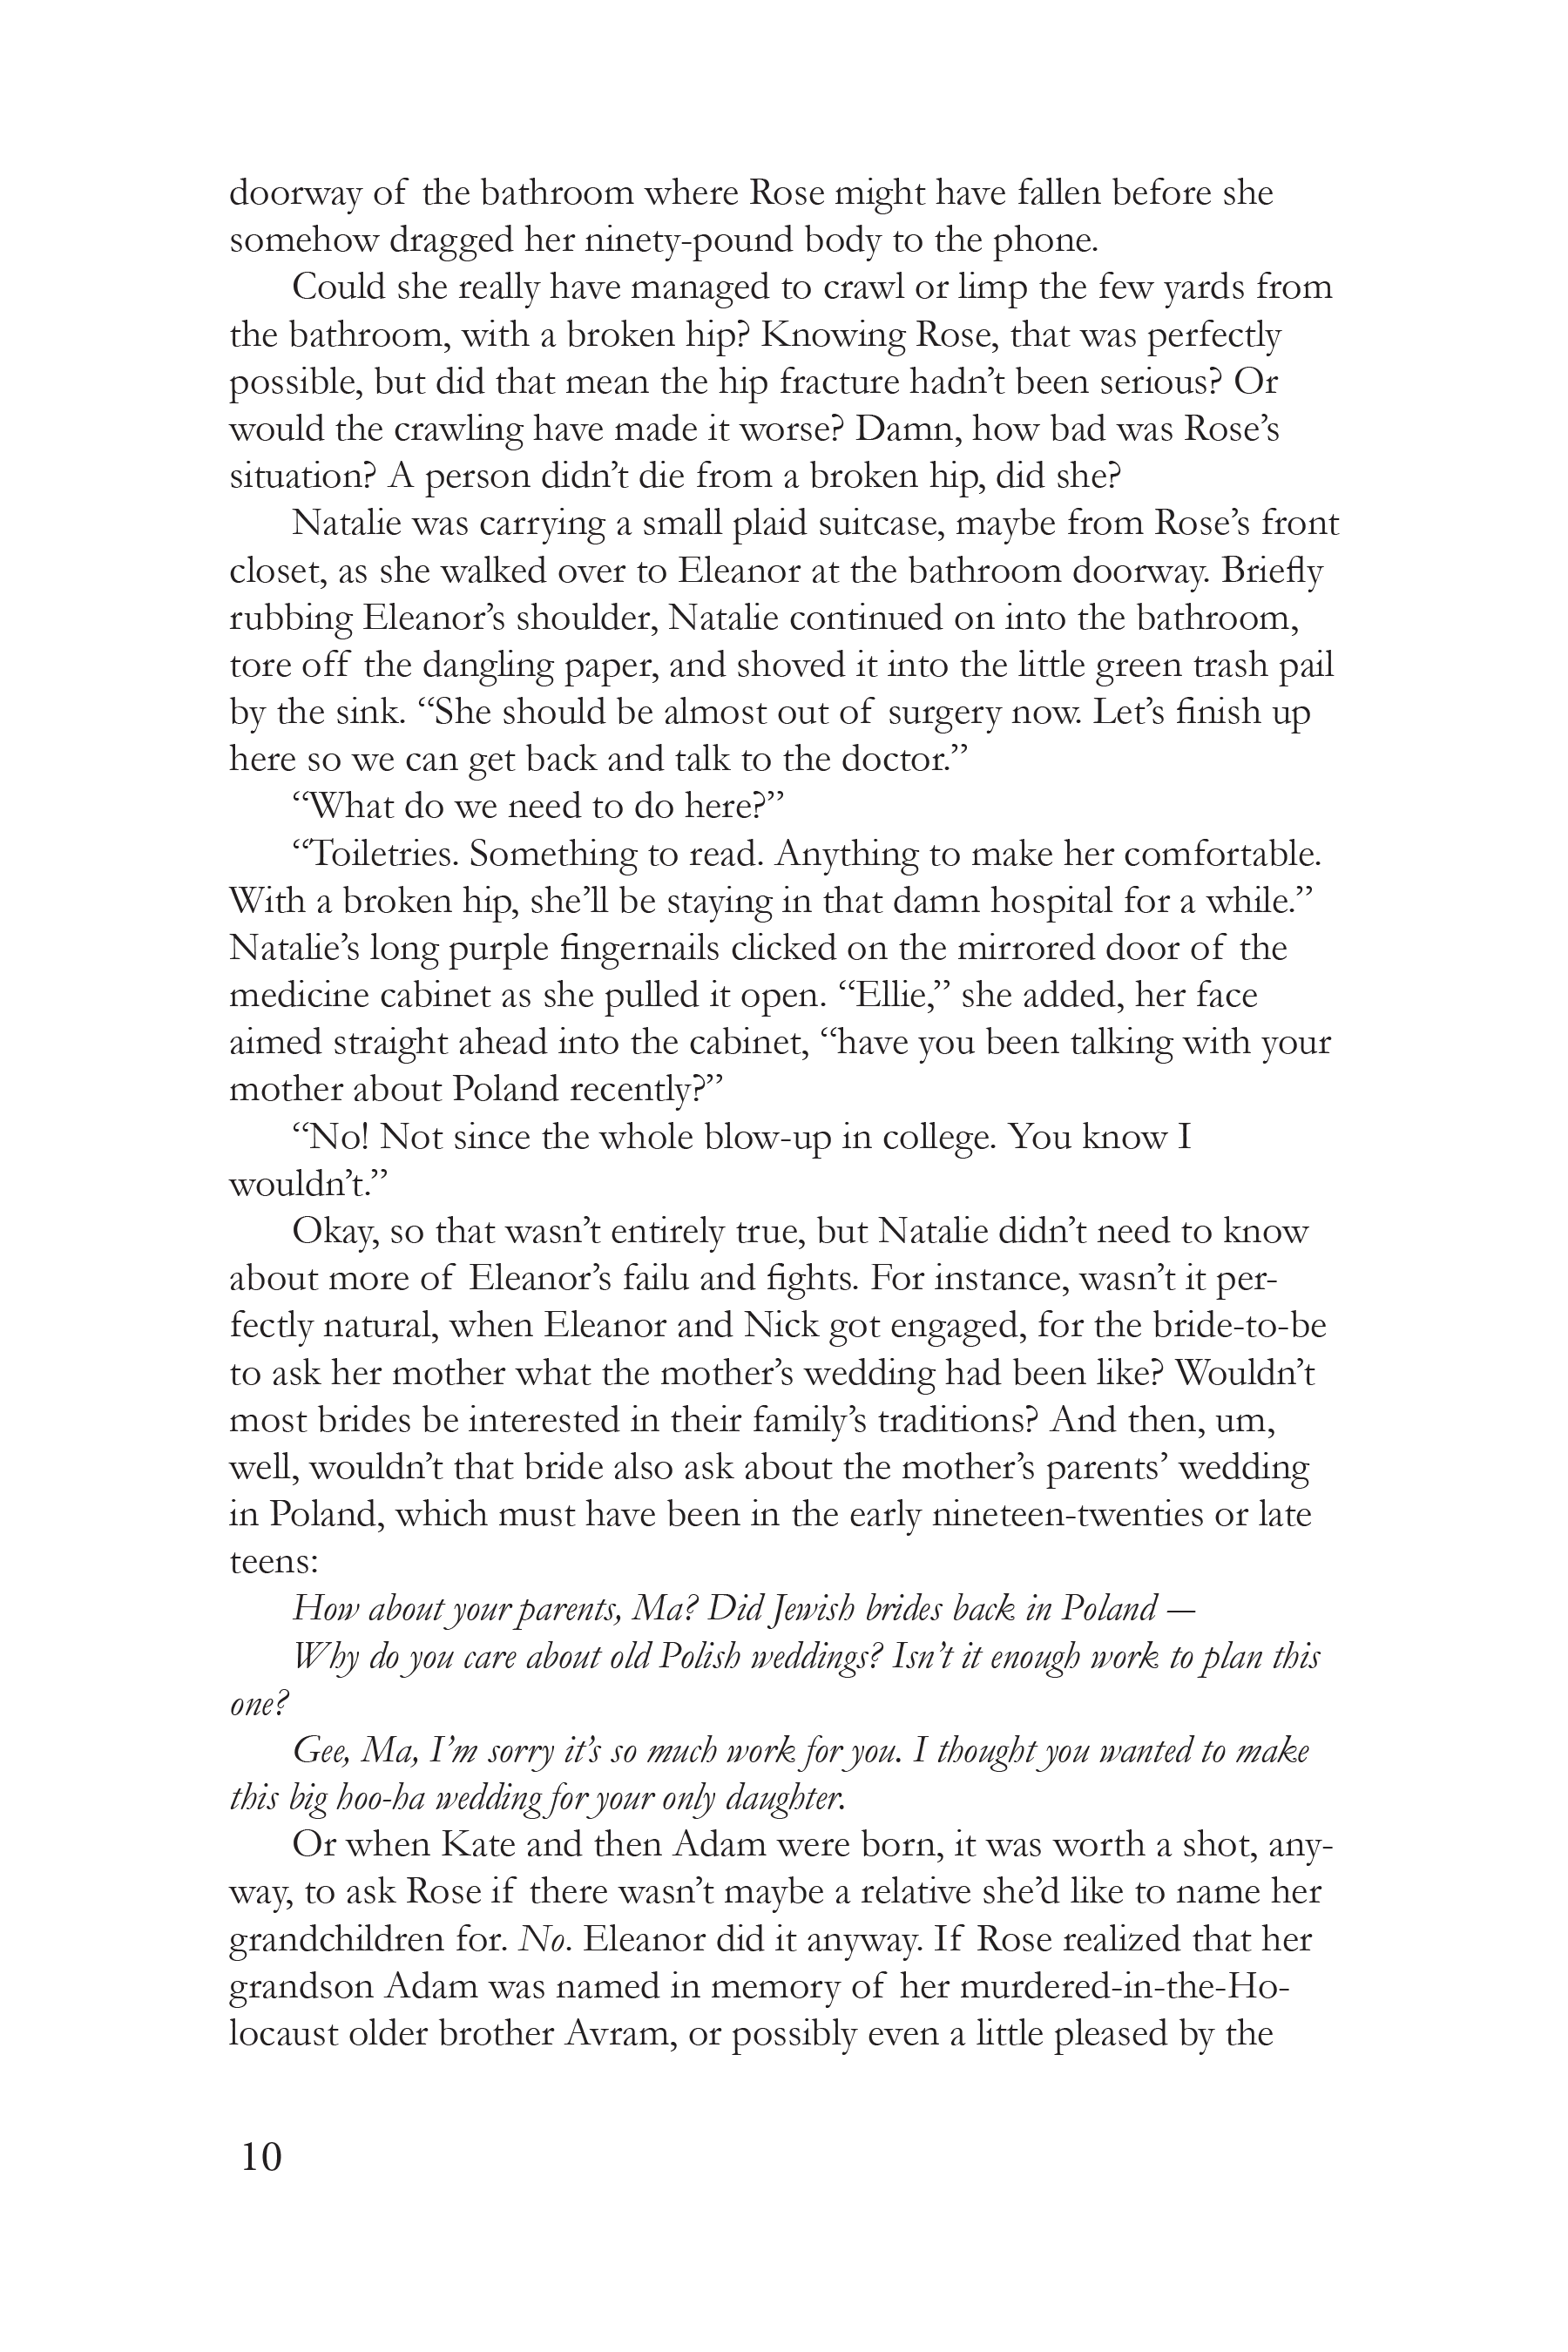 The_Heirs_Ch_1_pg10.png